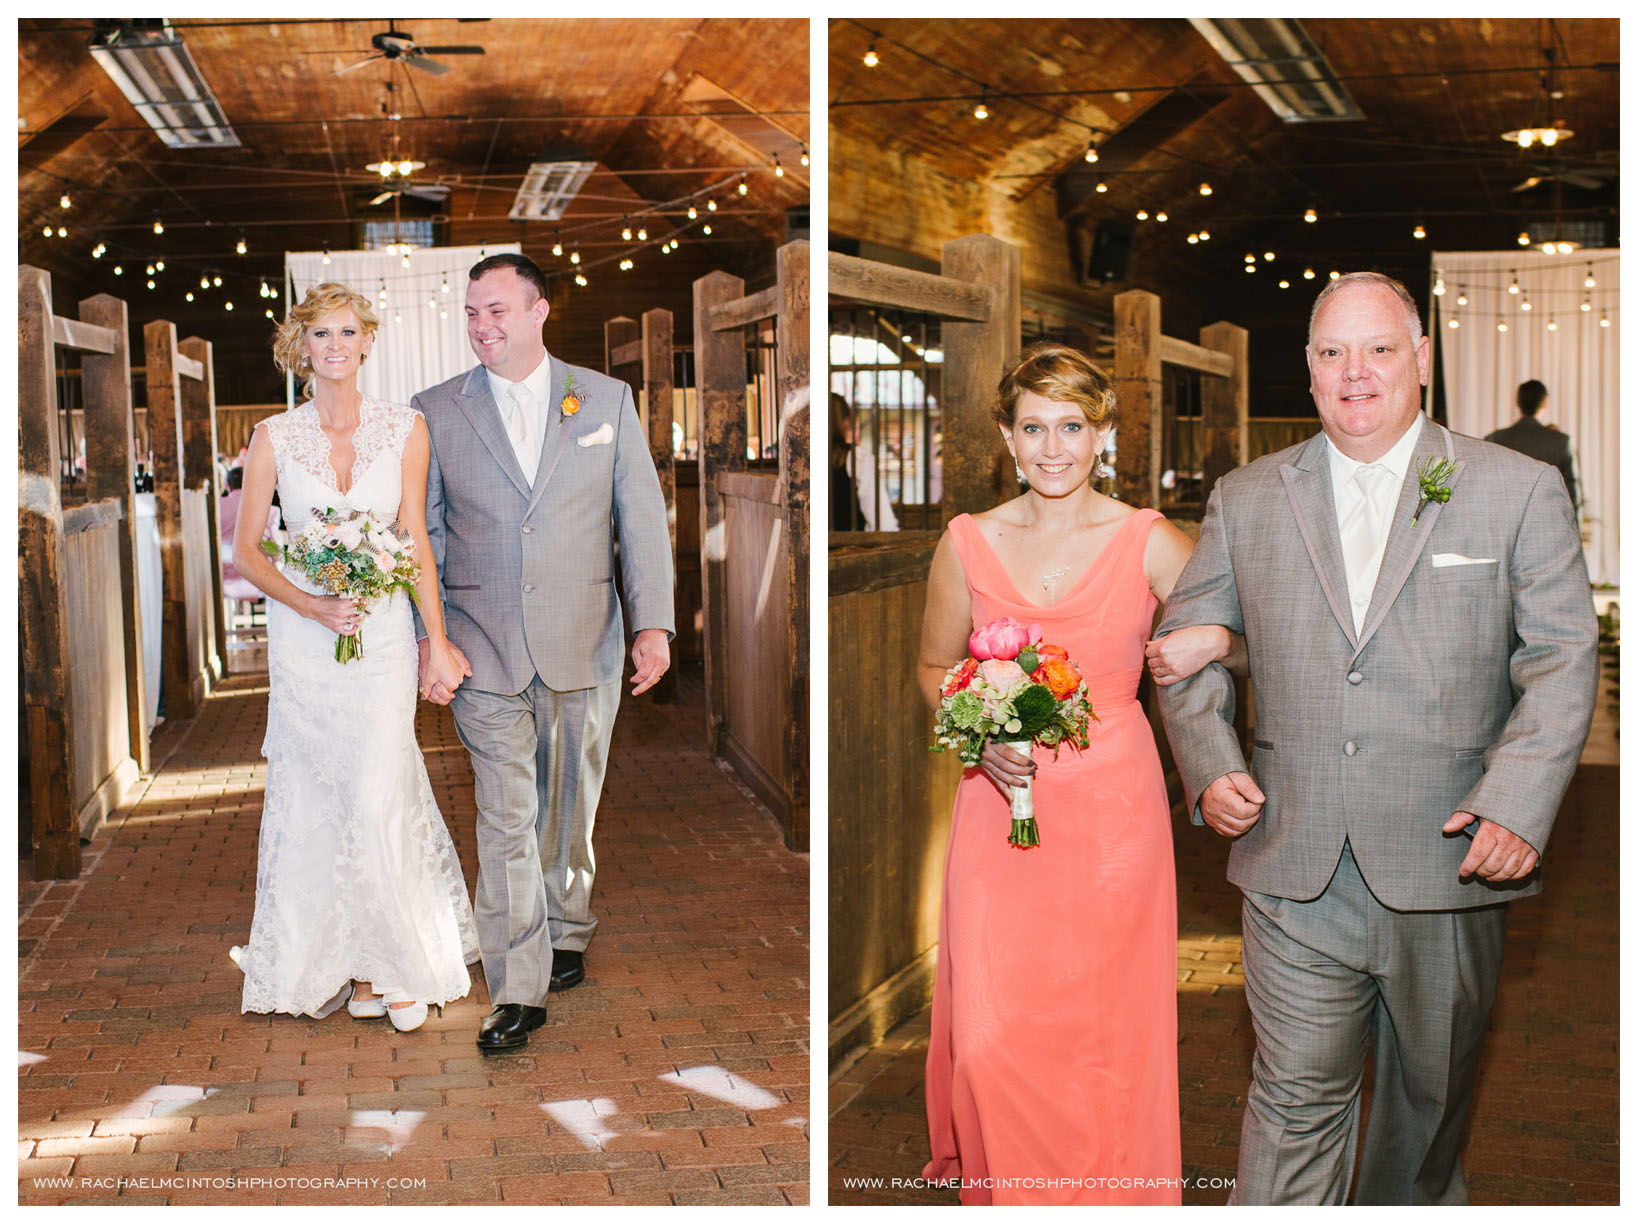 Biltmore Antler Hill Barn Wedding 80.5.jpg